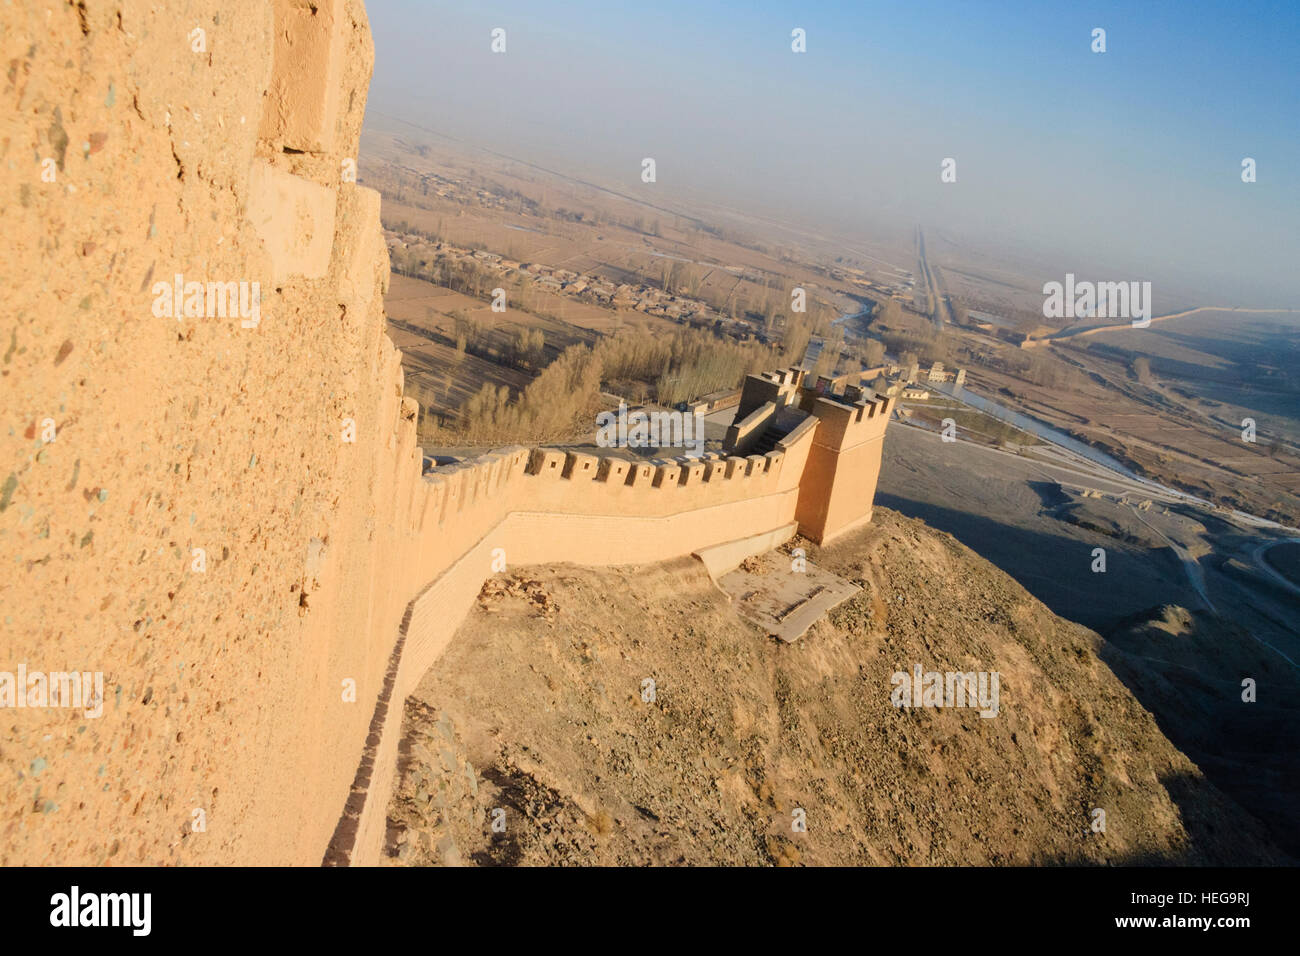 Western confine of the Great Wall at Jiayuguan, Gansu province, China, Asia - Stock Image